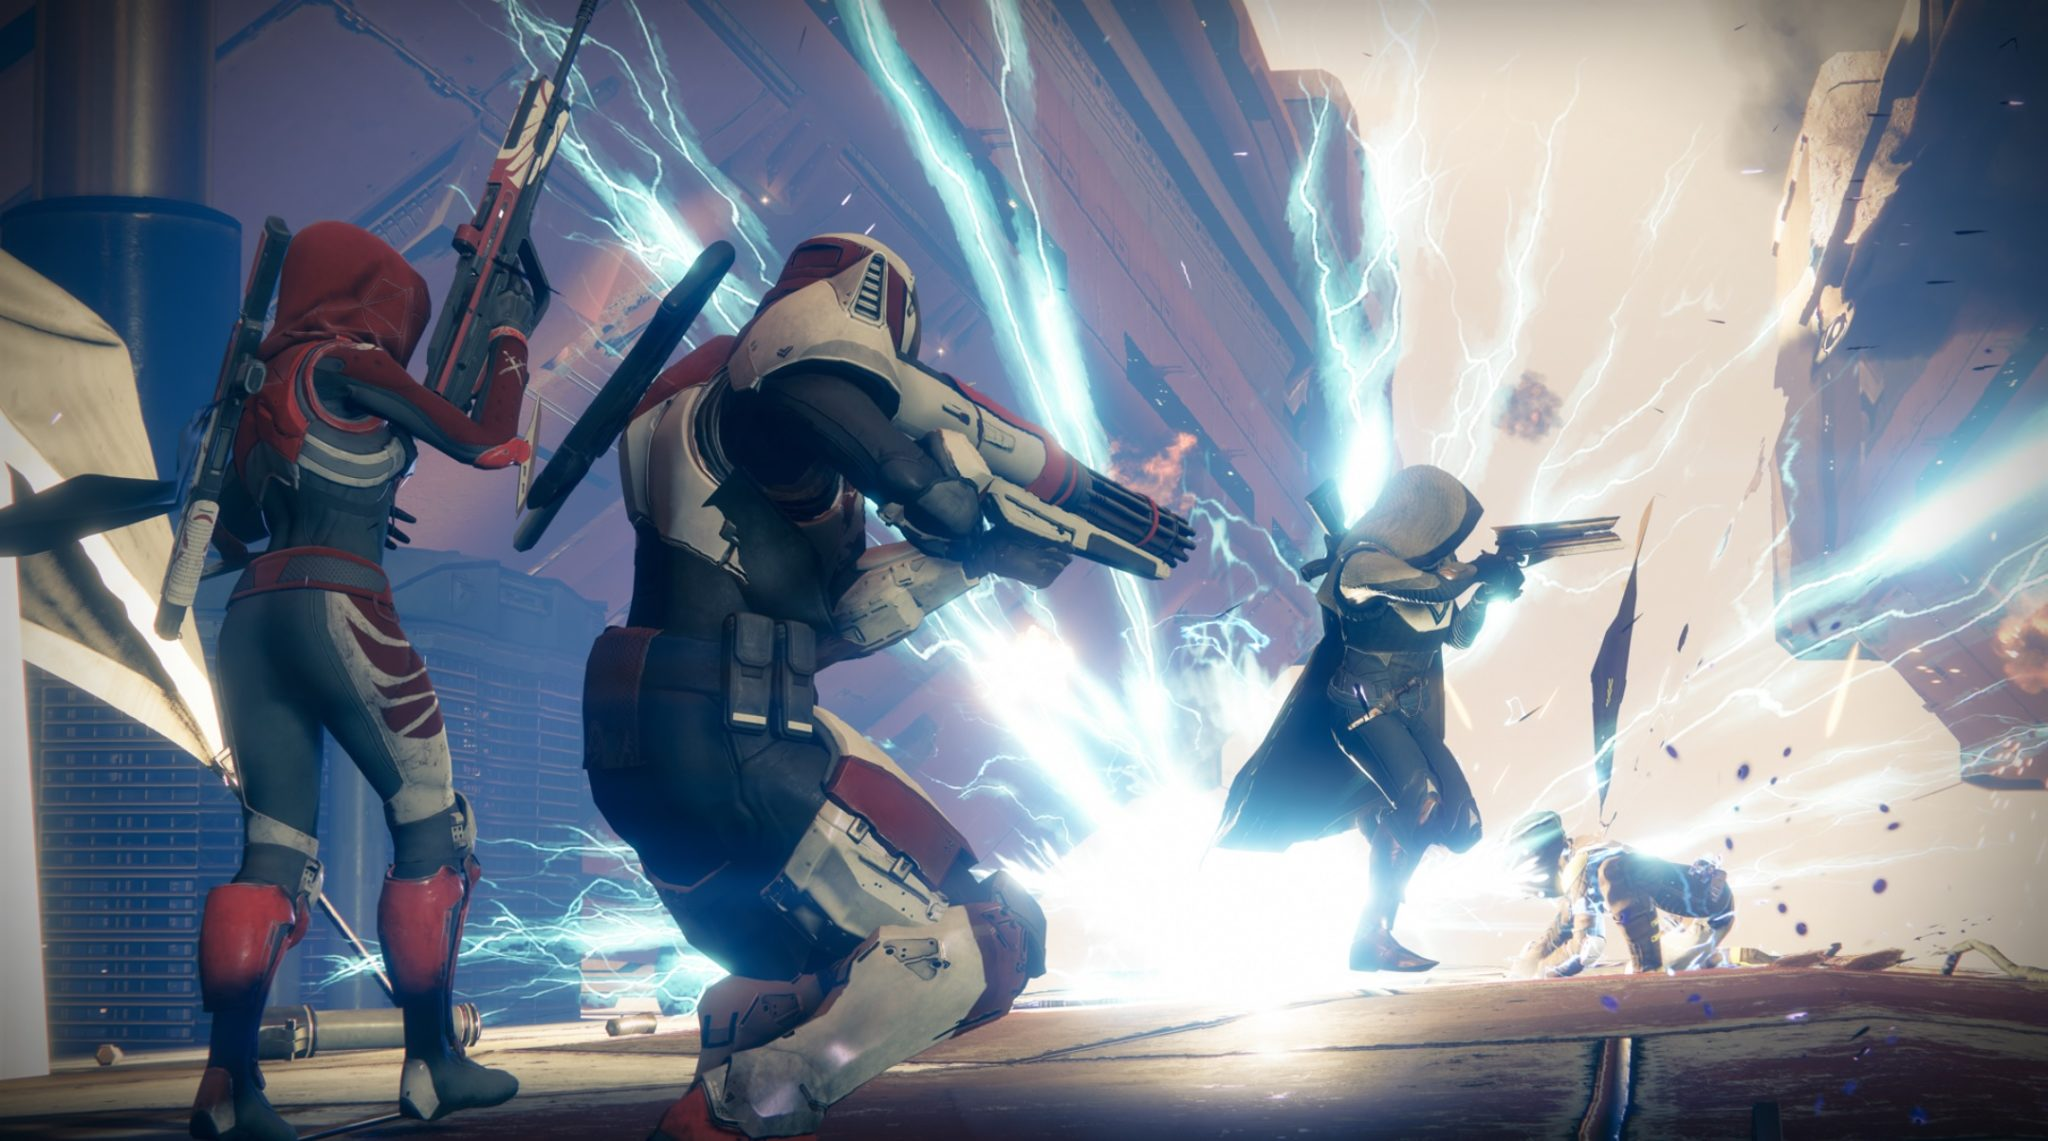 The Crucible has been awash with bright lights as the Hard Light flexed it's muscles -- until now.